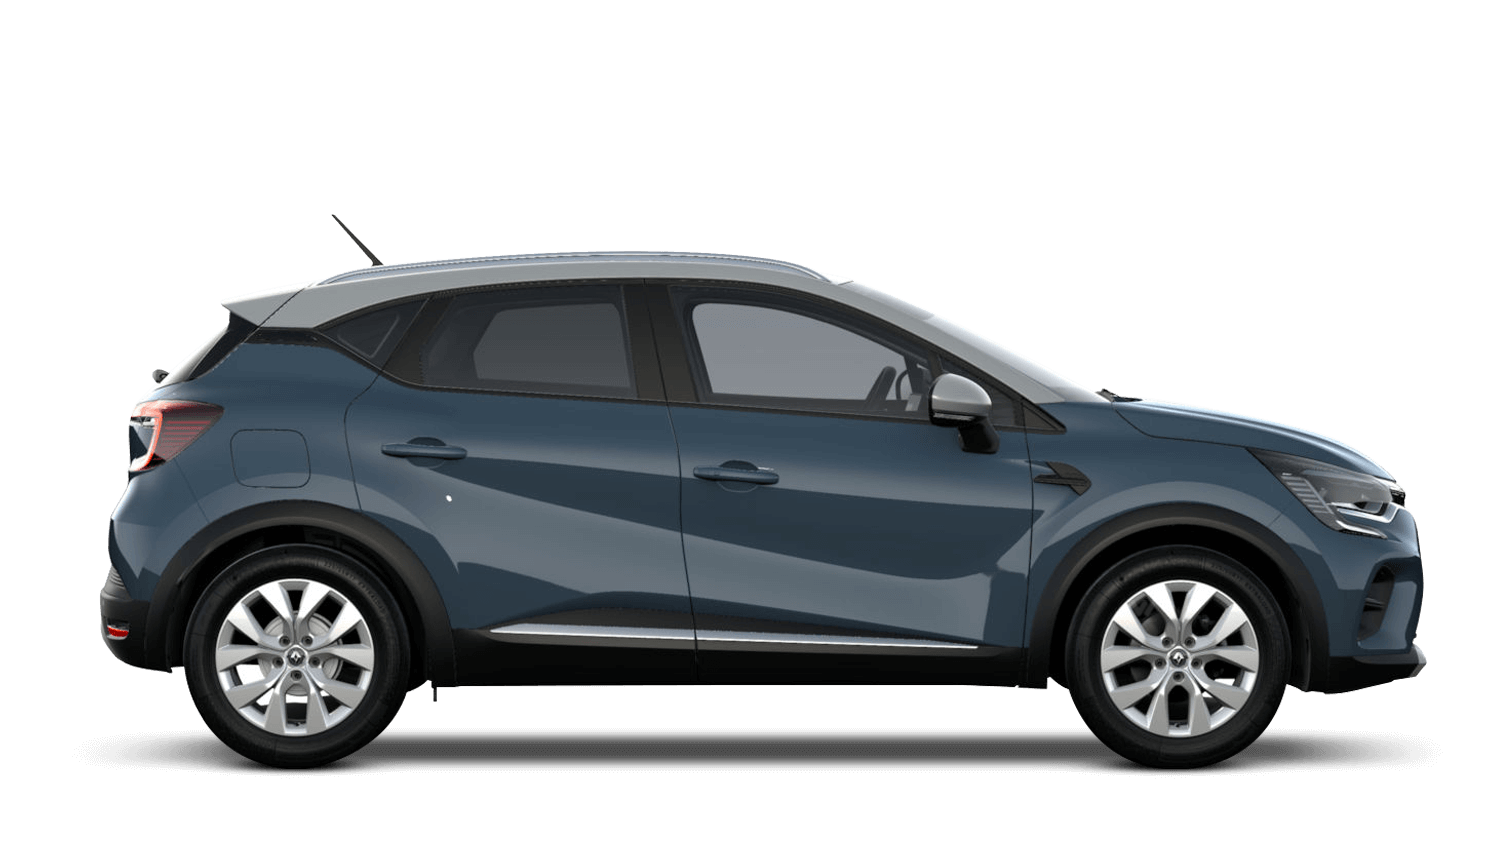 Boston Blue with Highland Grey Roof All-New Renault CAPTUR